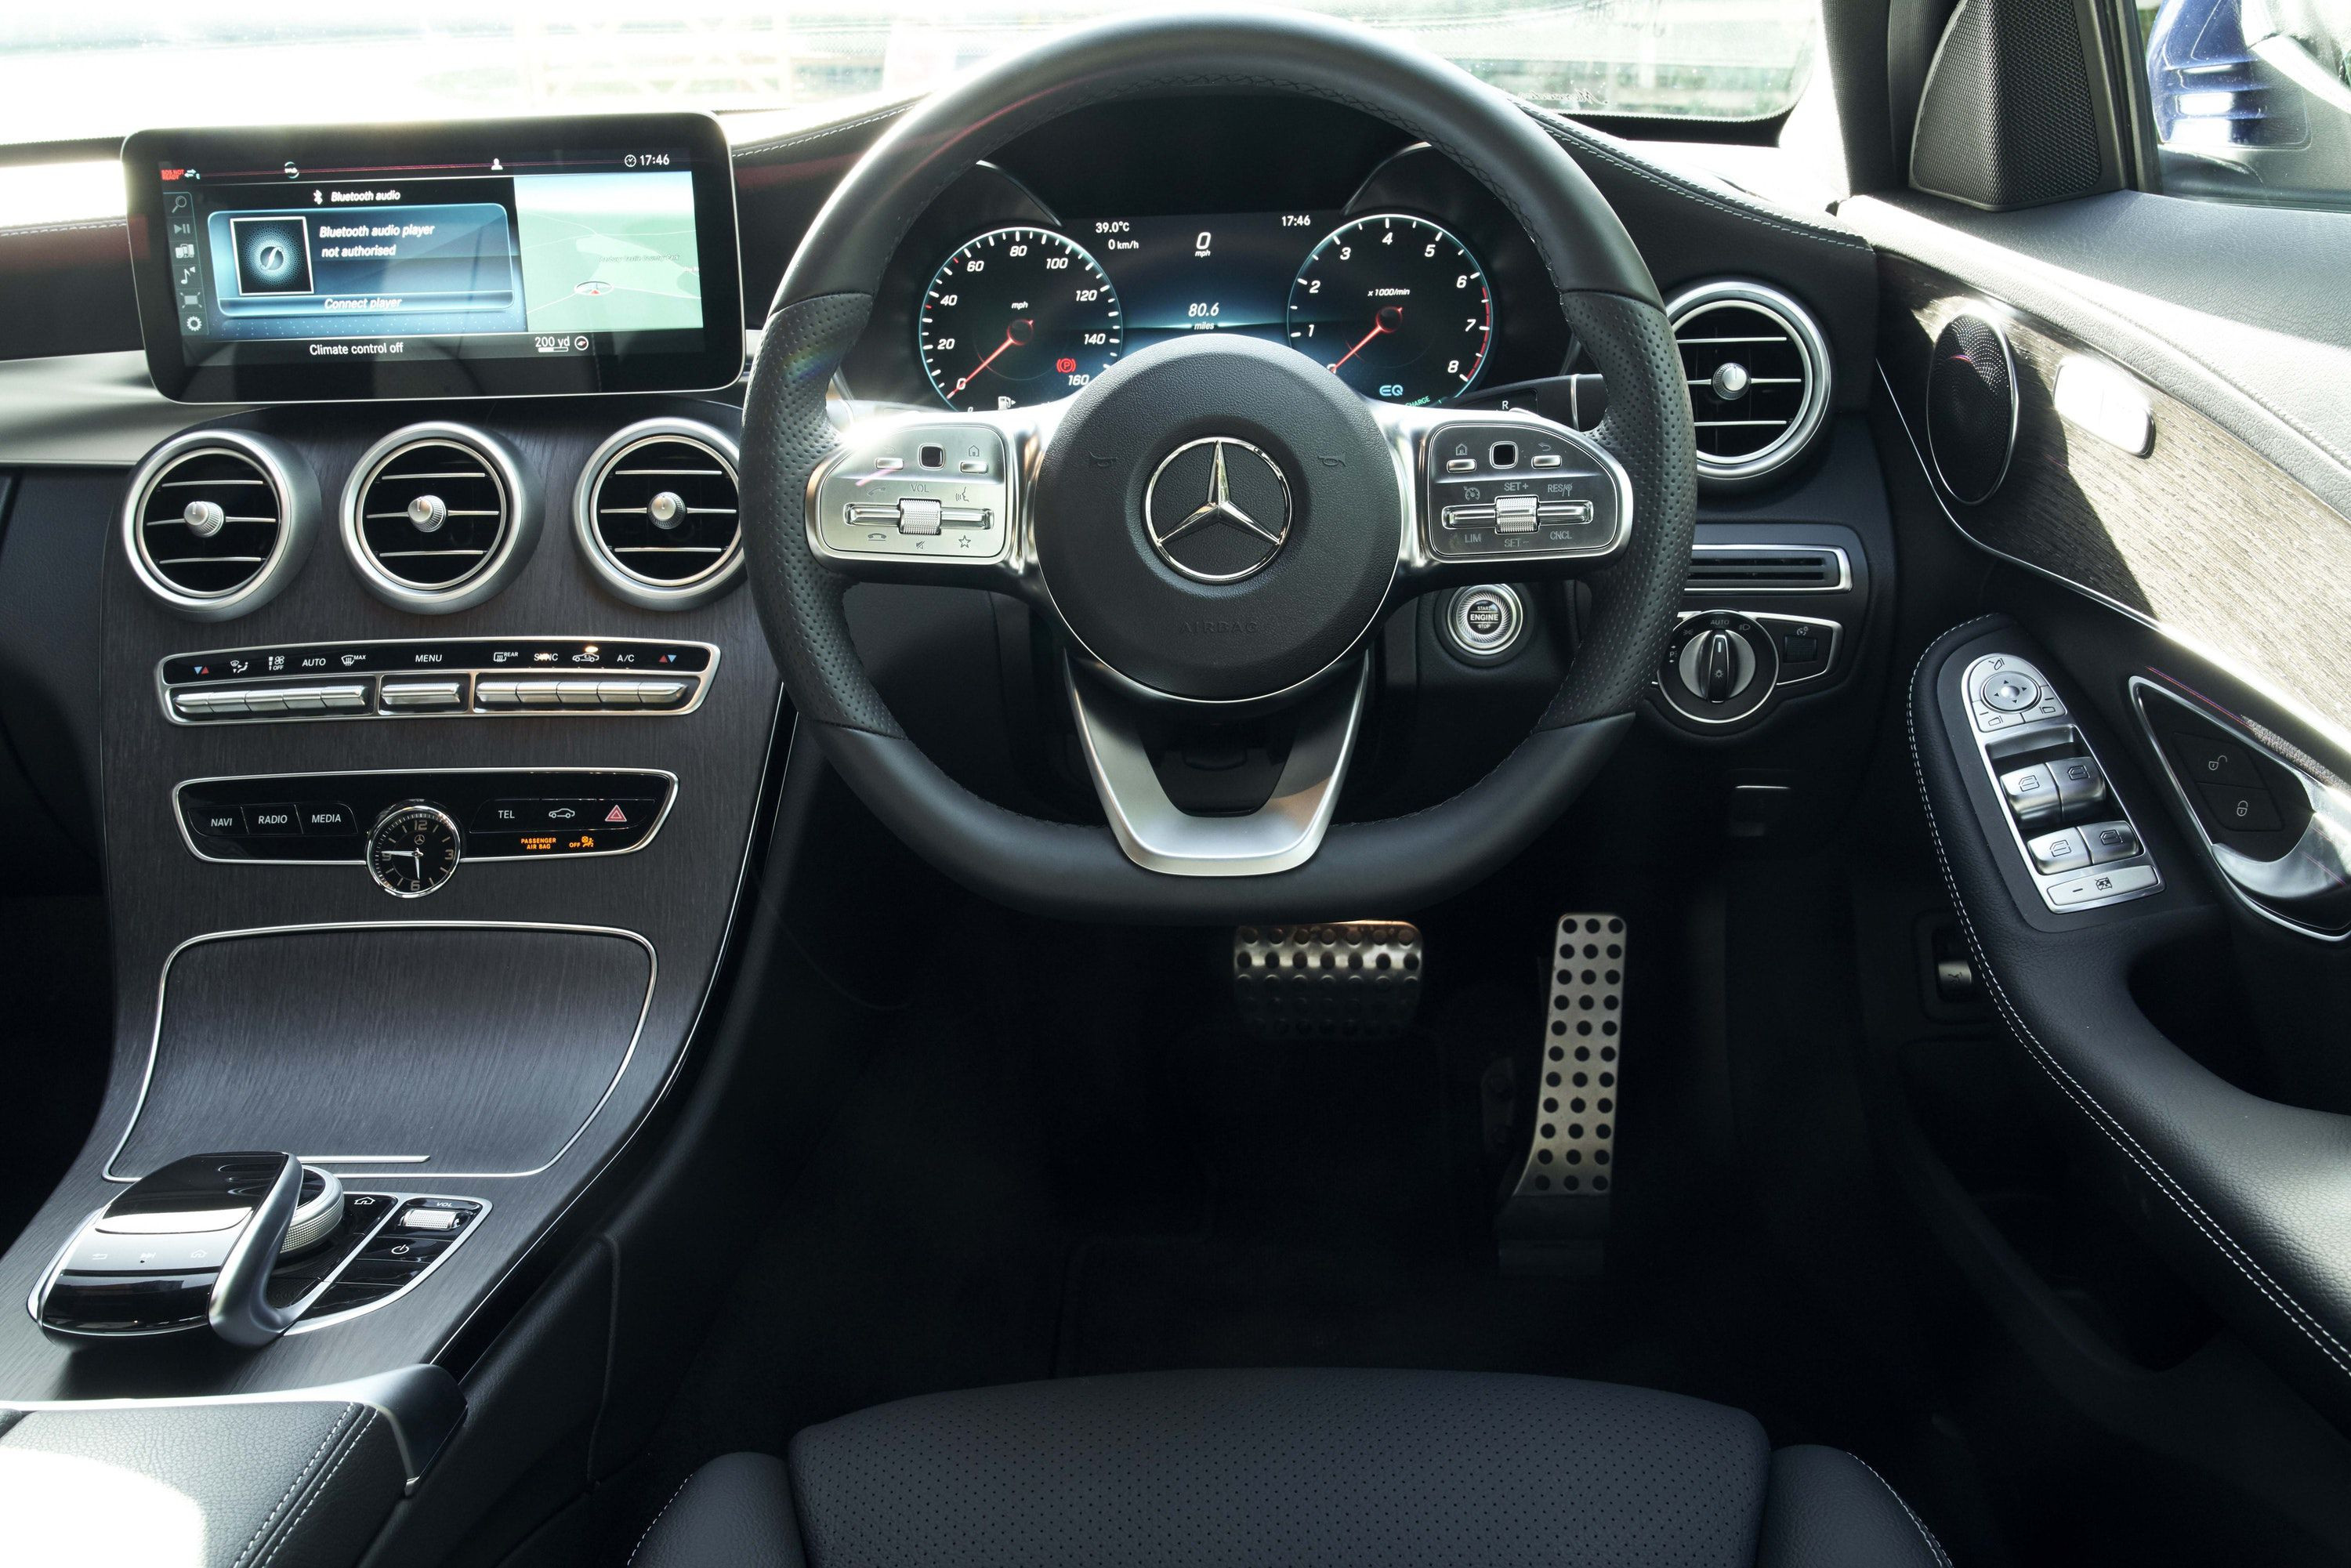 The Interior of Mercedes-Benz C-Class